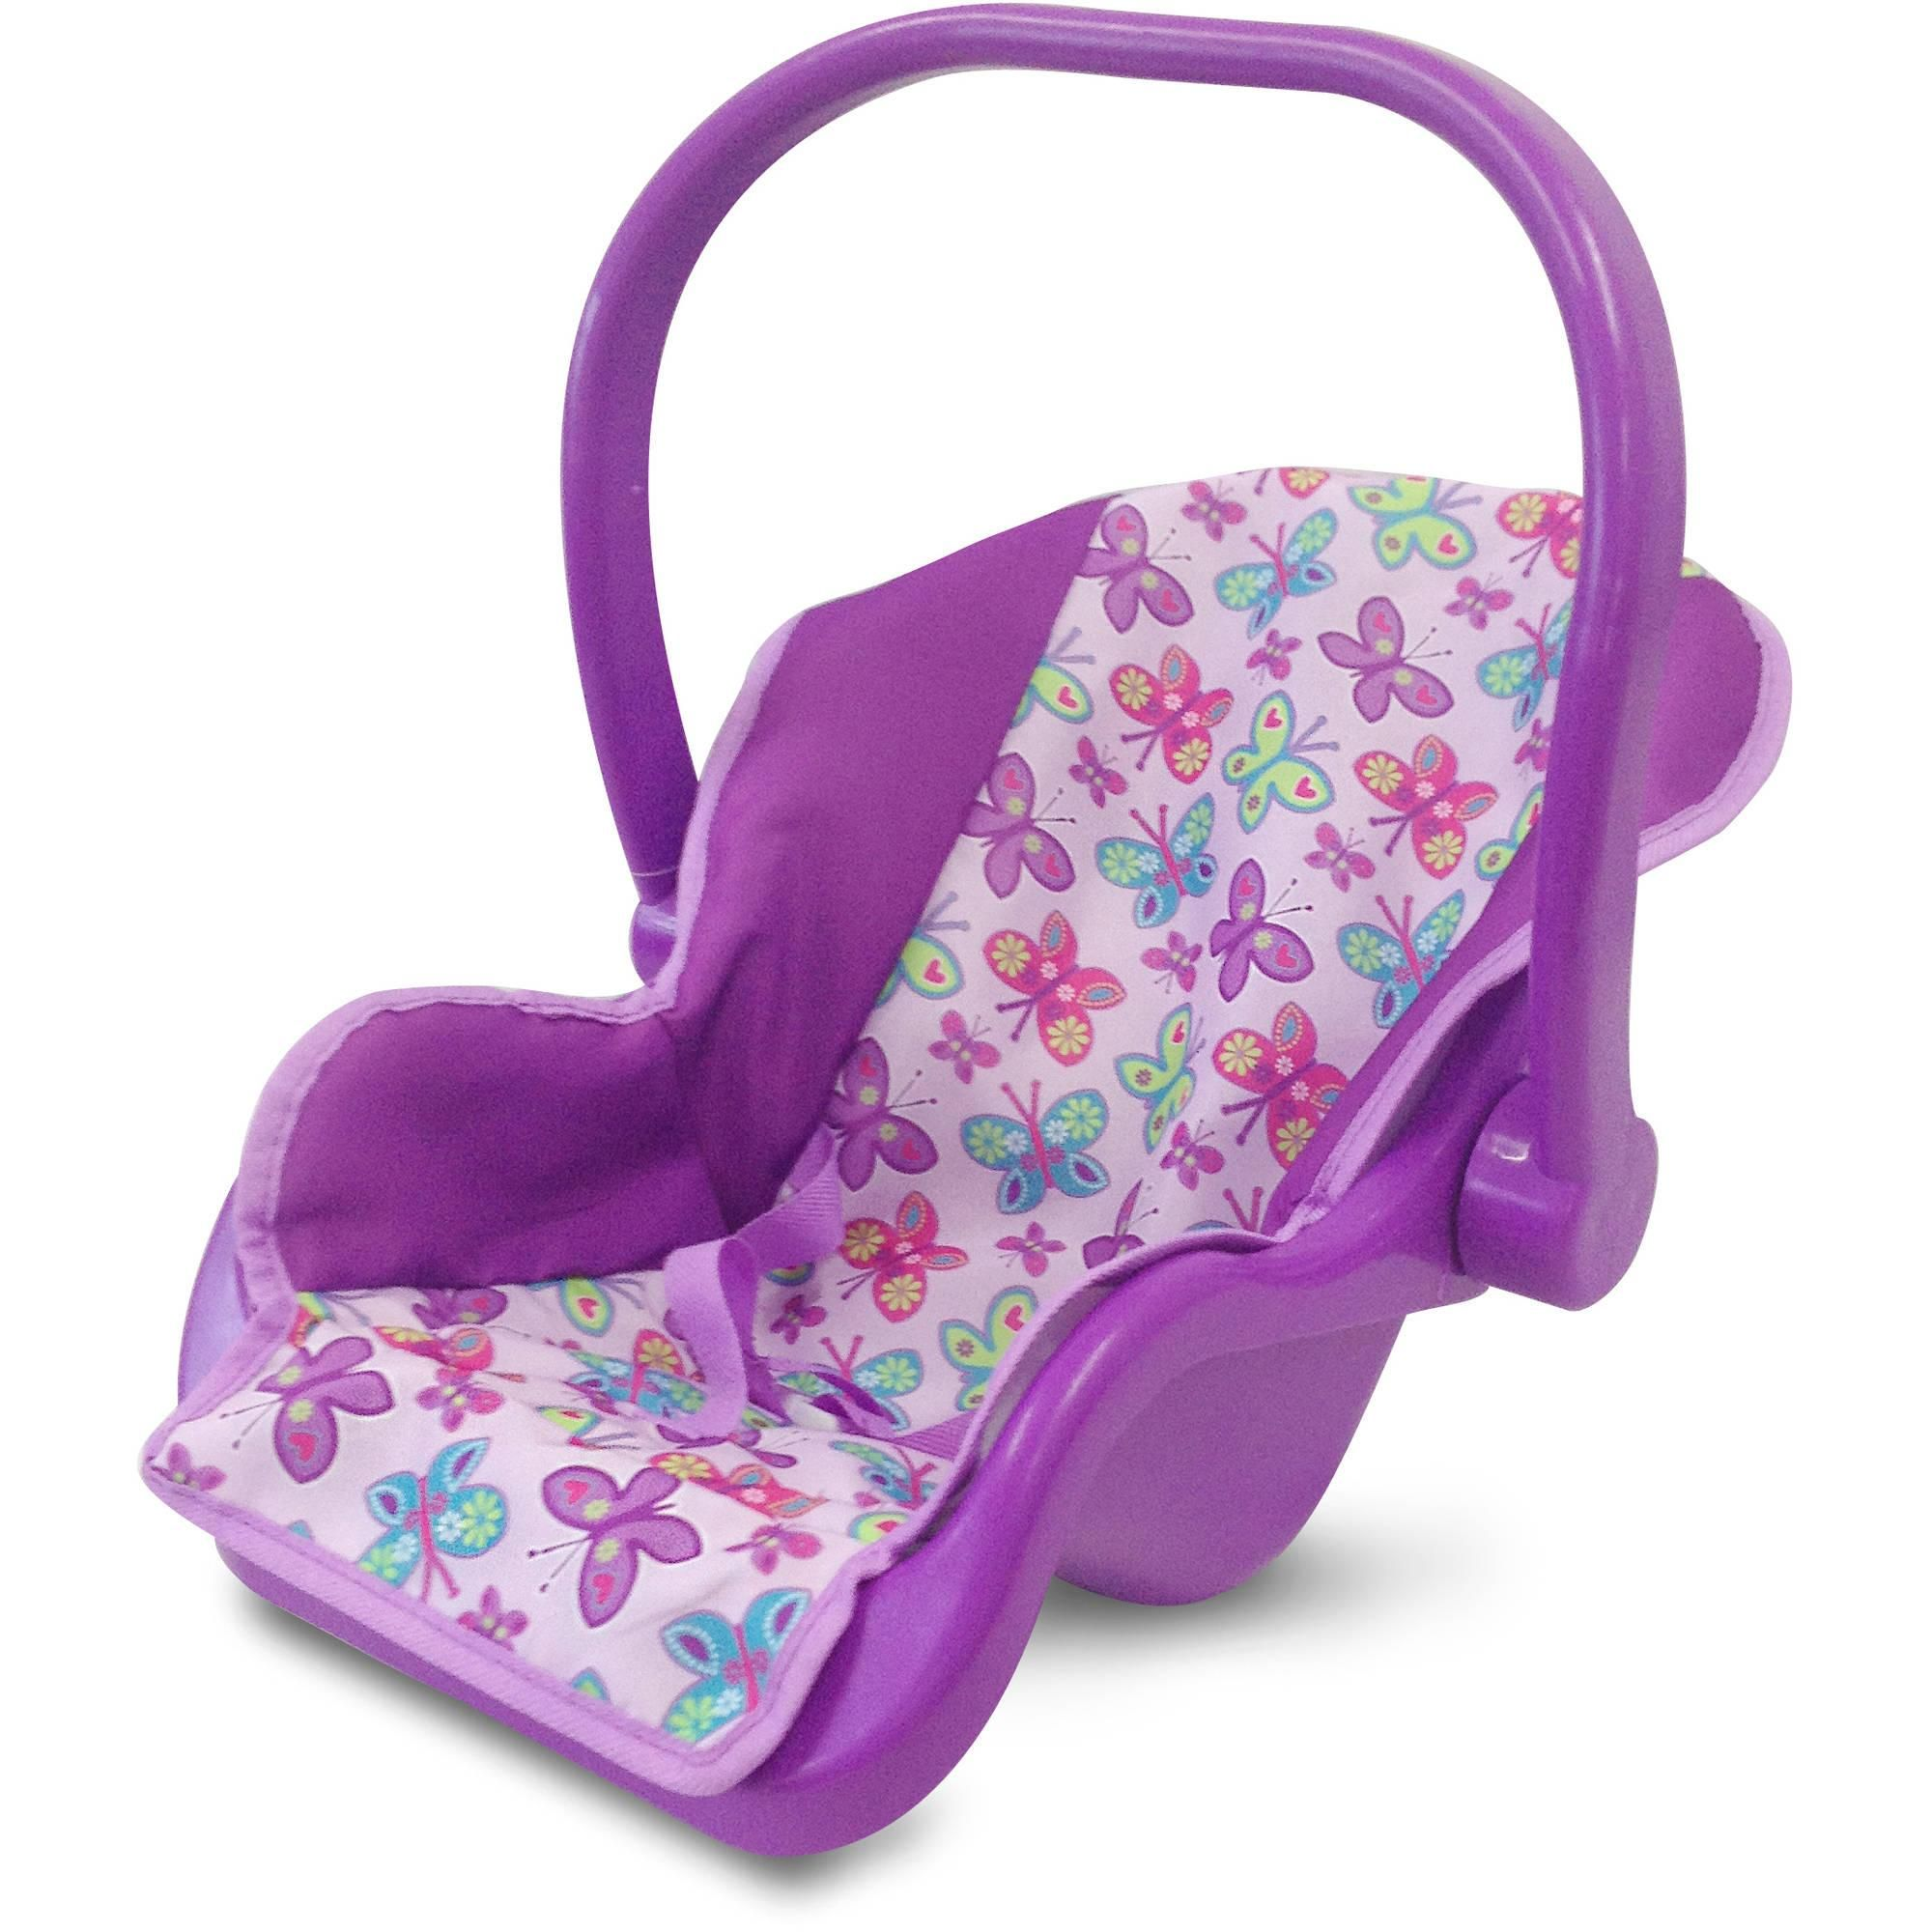 Car Seats For Baby Dolls